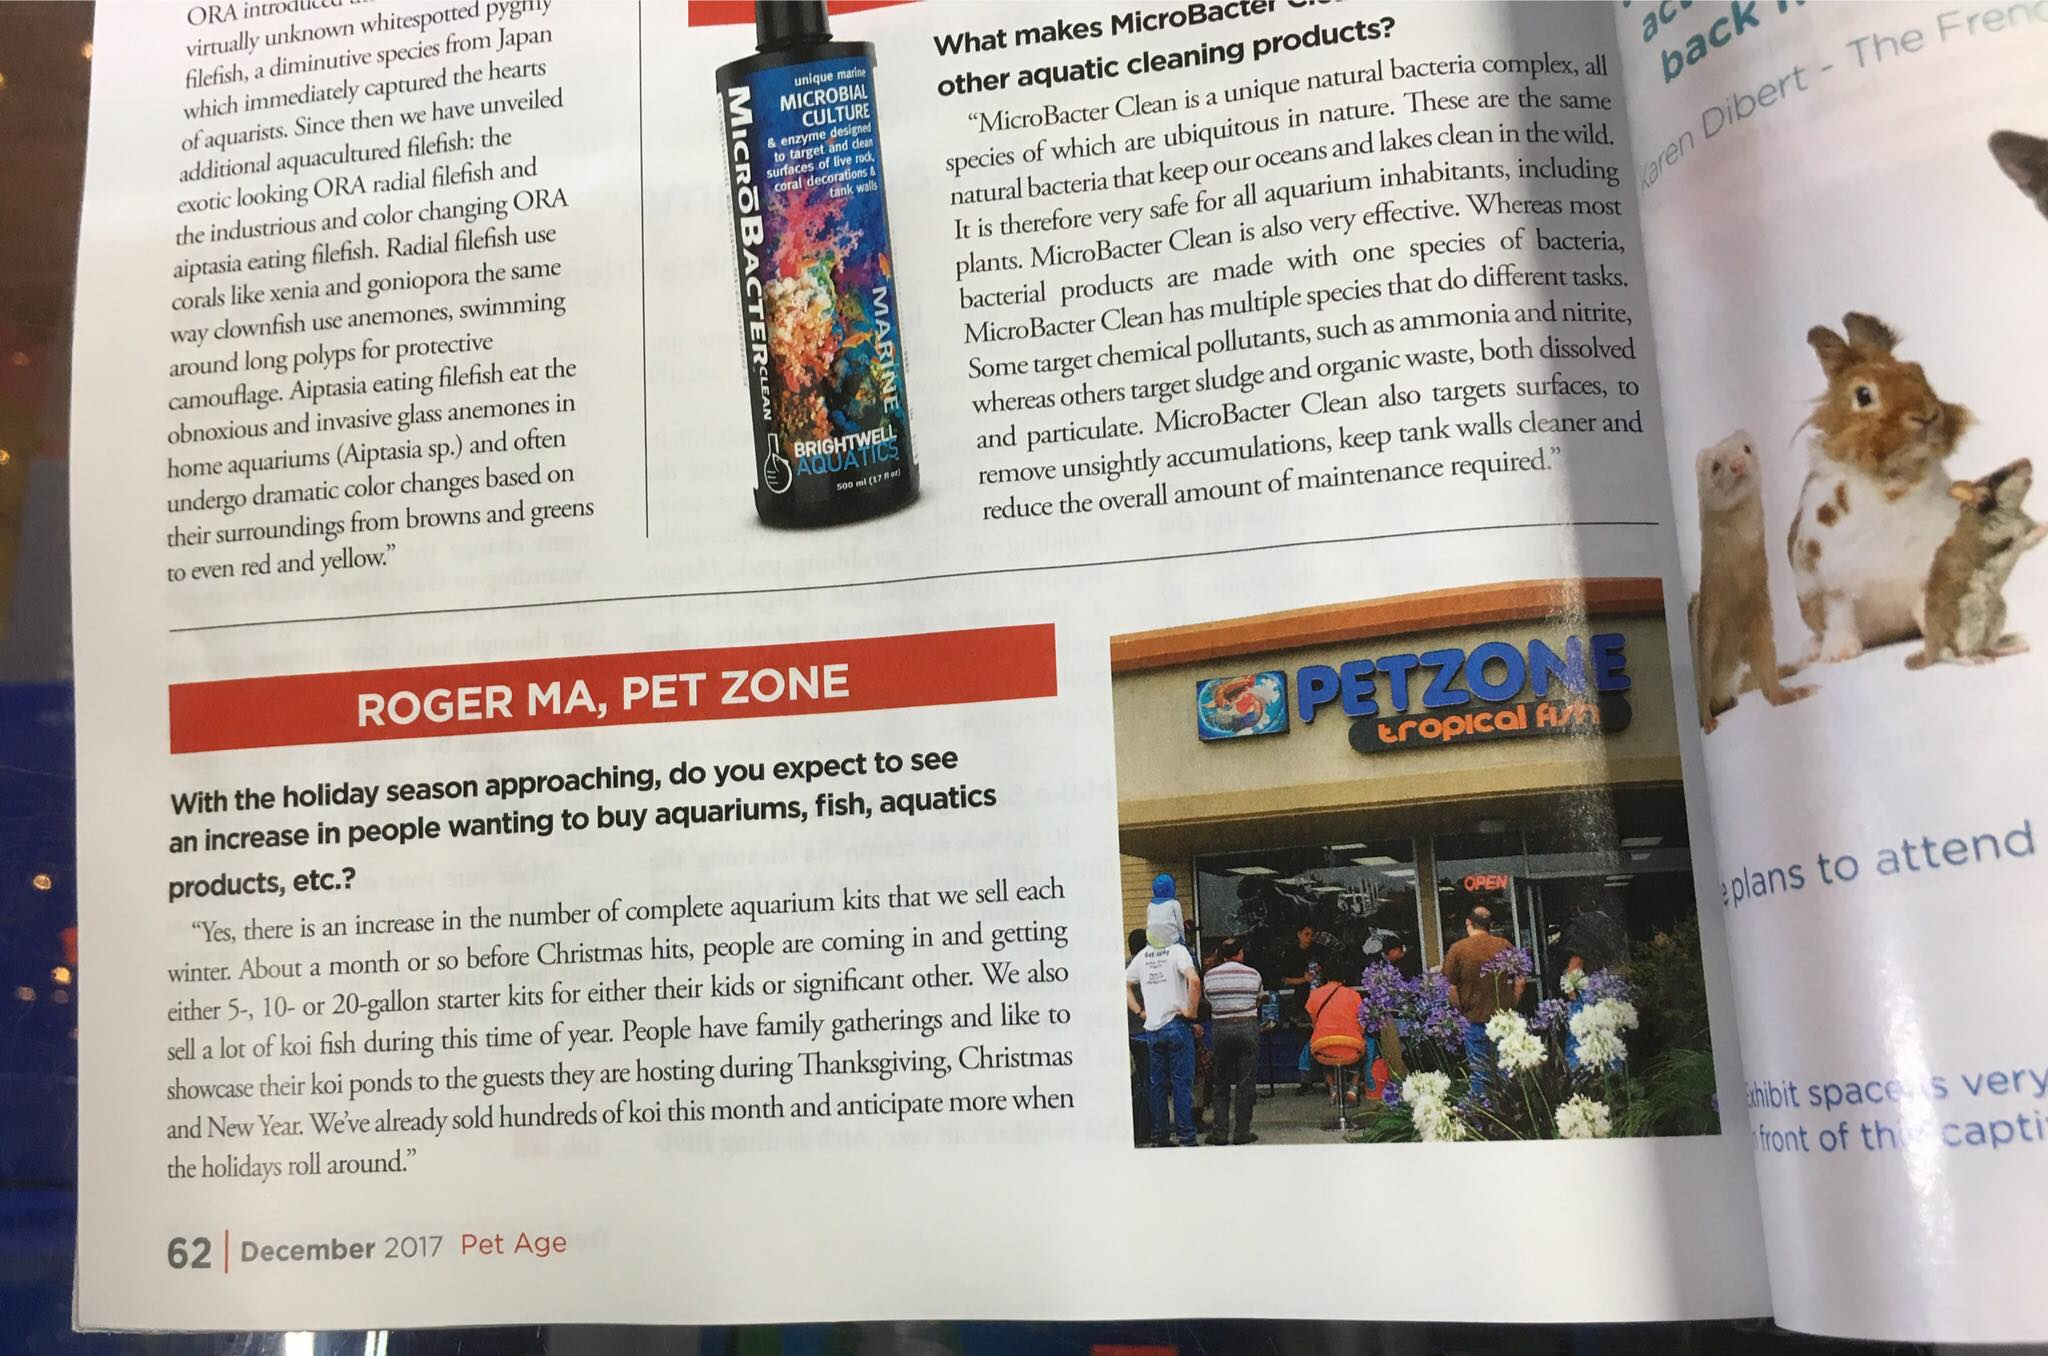 pet-age-magazine-pet-zone-tropical-fish-roger-ma.jpg